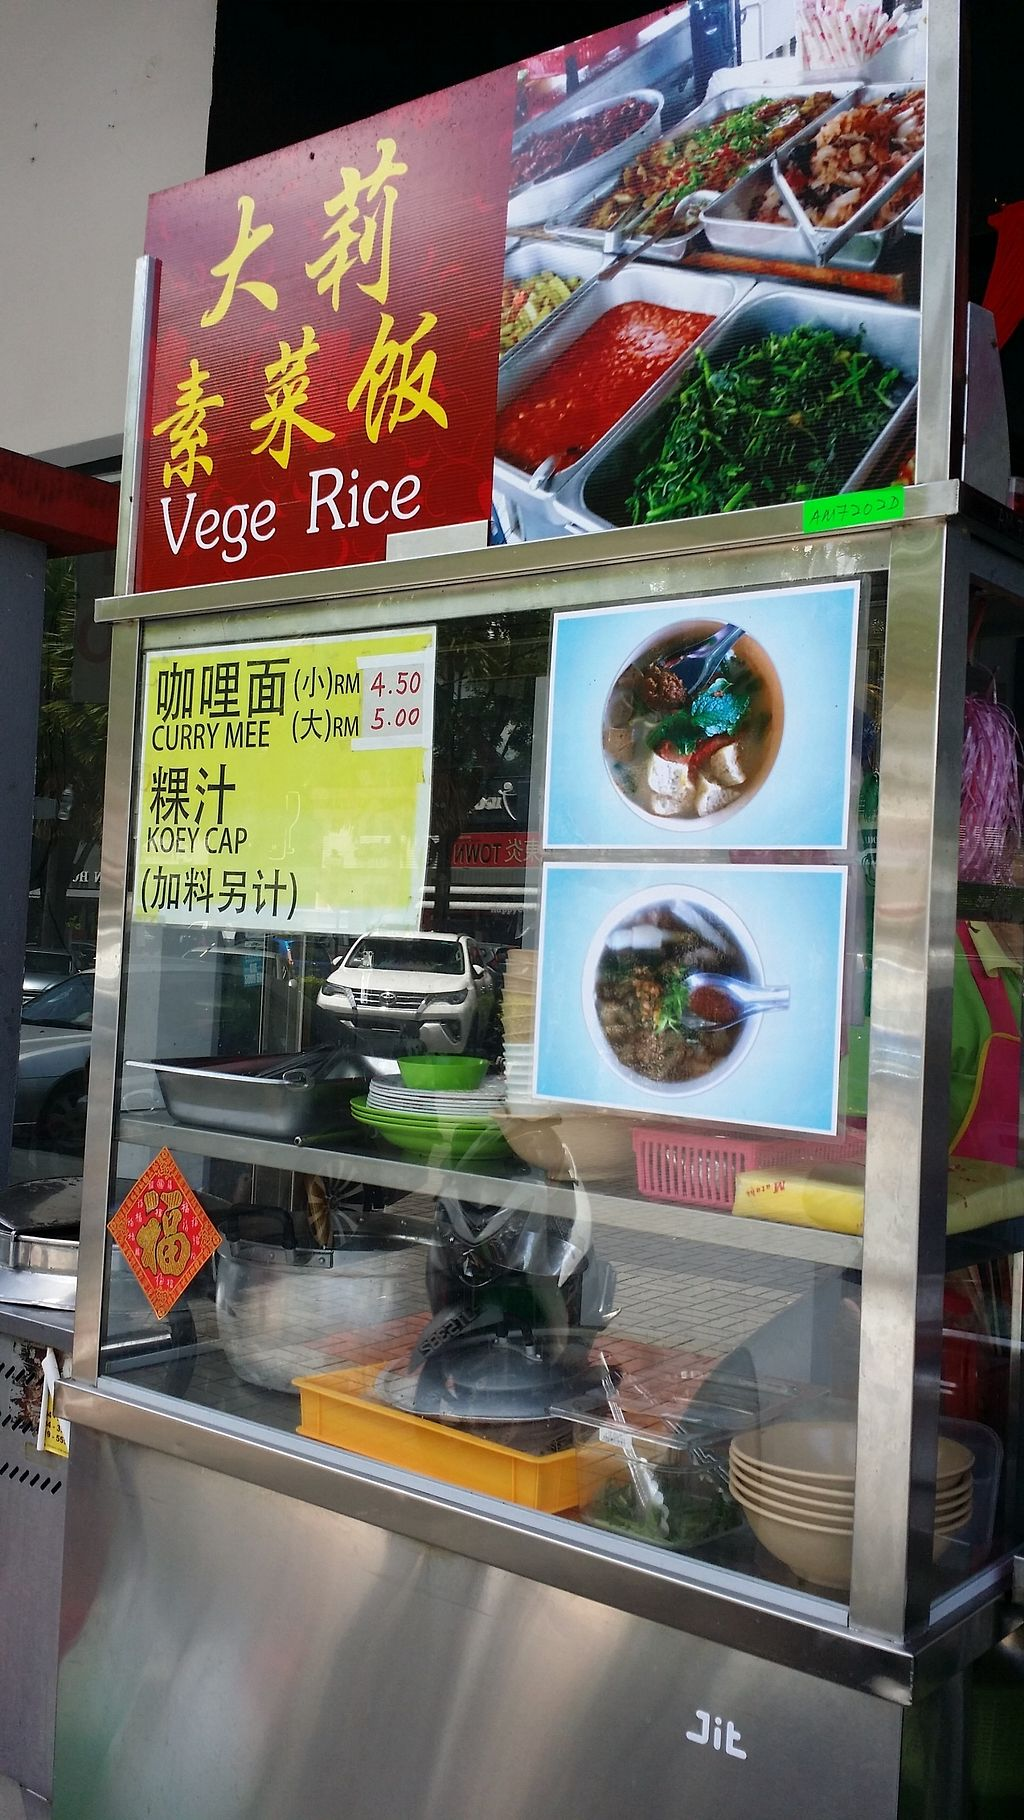 """Photo of Da Li Vege Rice - Food Stall  by <a href=""""/members/profile/walter007"""">walter007</a> <br/>Stall <br/> October 10, 2017  - <a href='/contact/abuse/image/102684/314037'>Report</a>"""